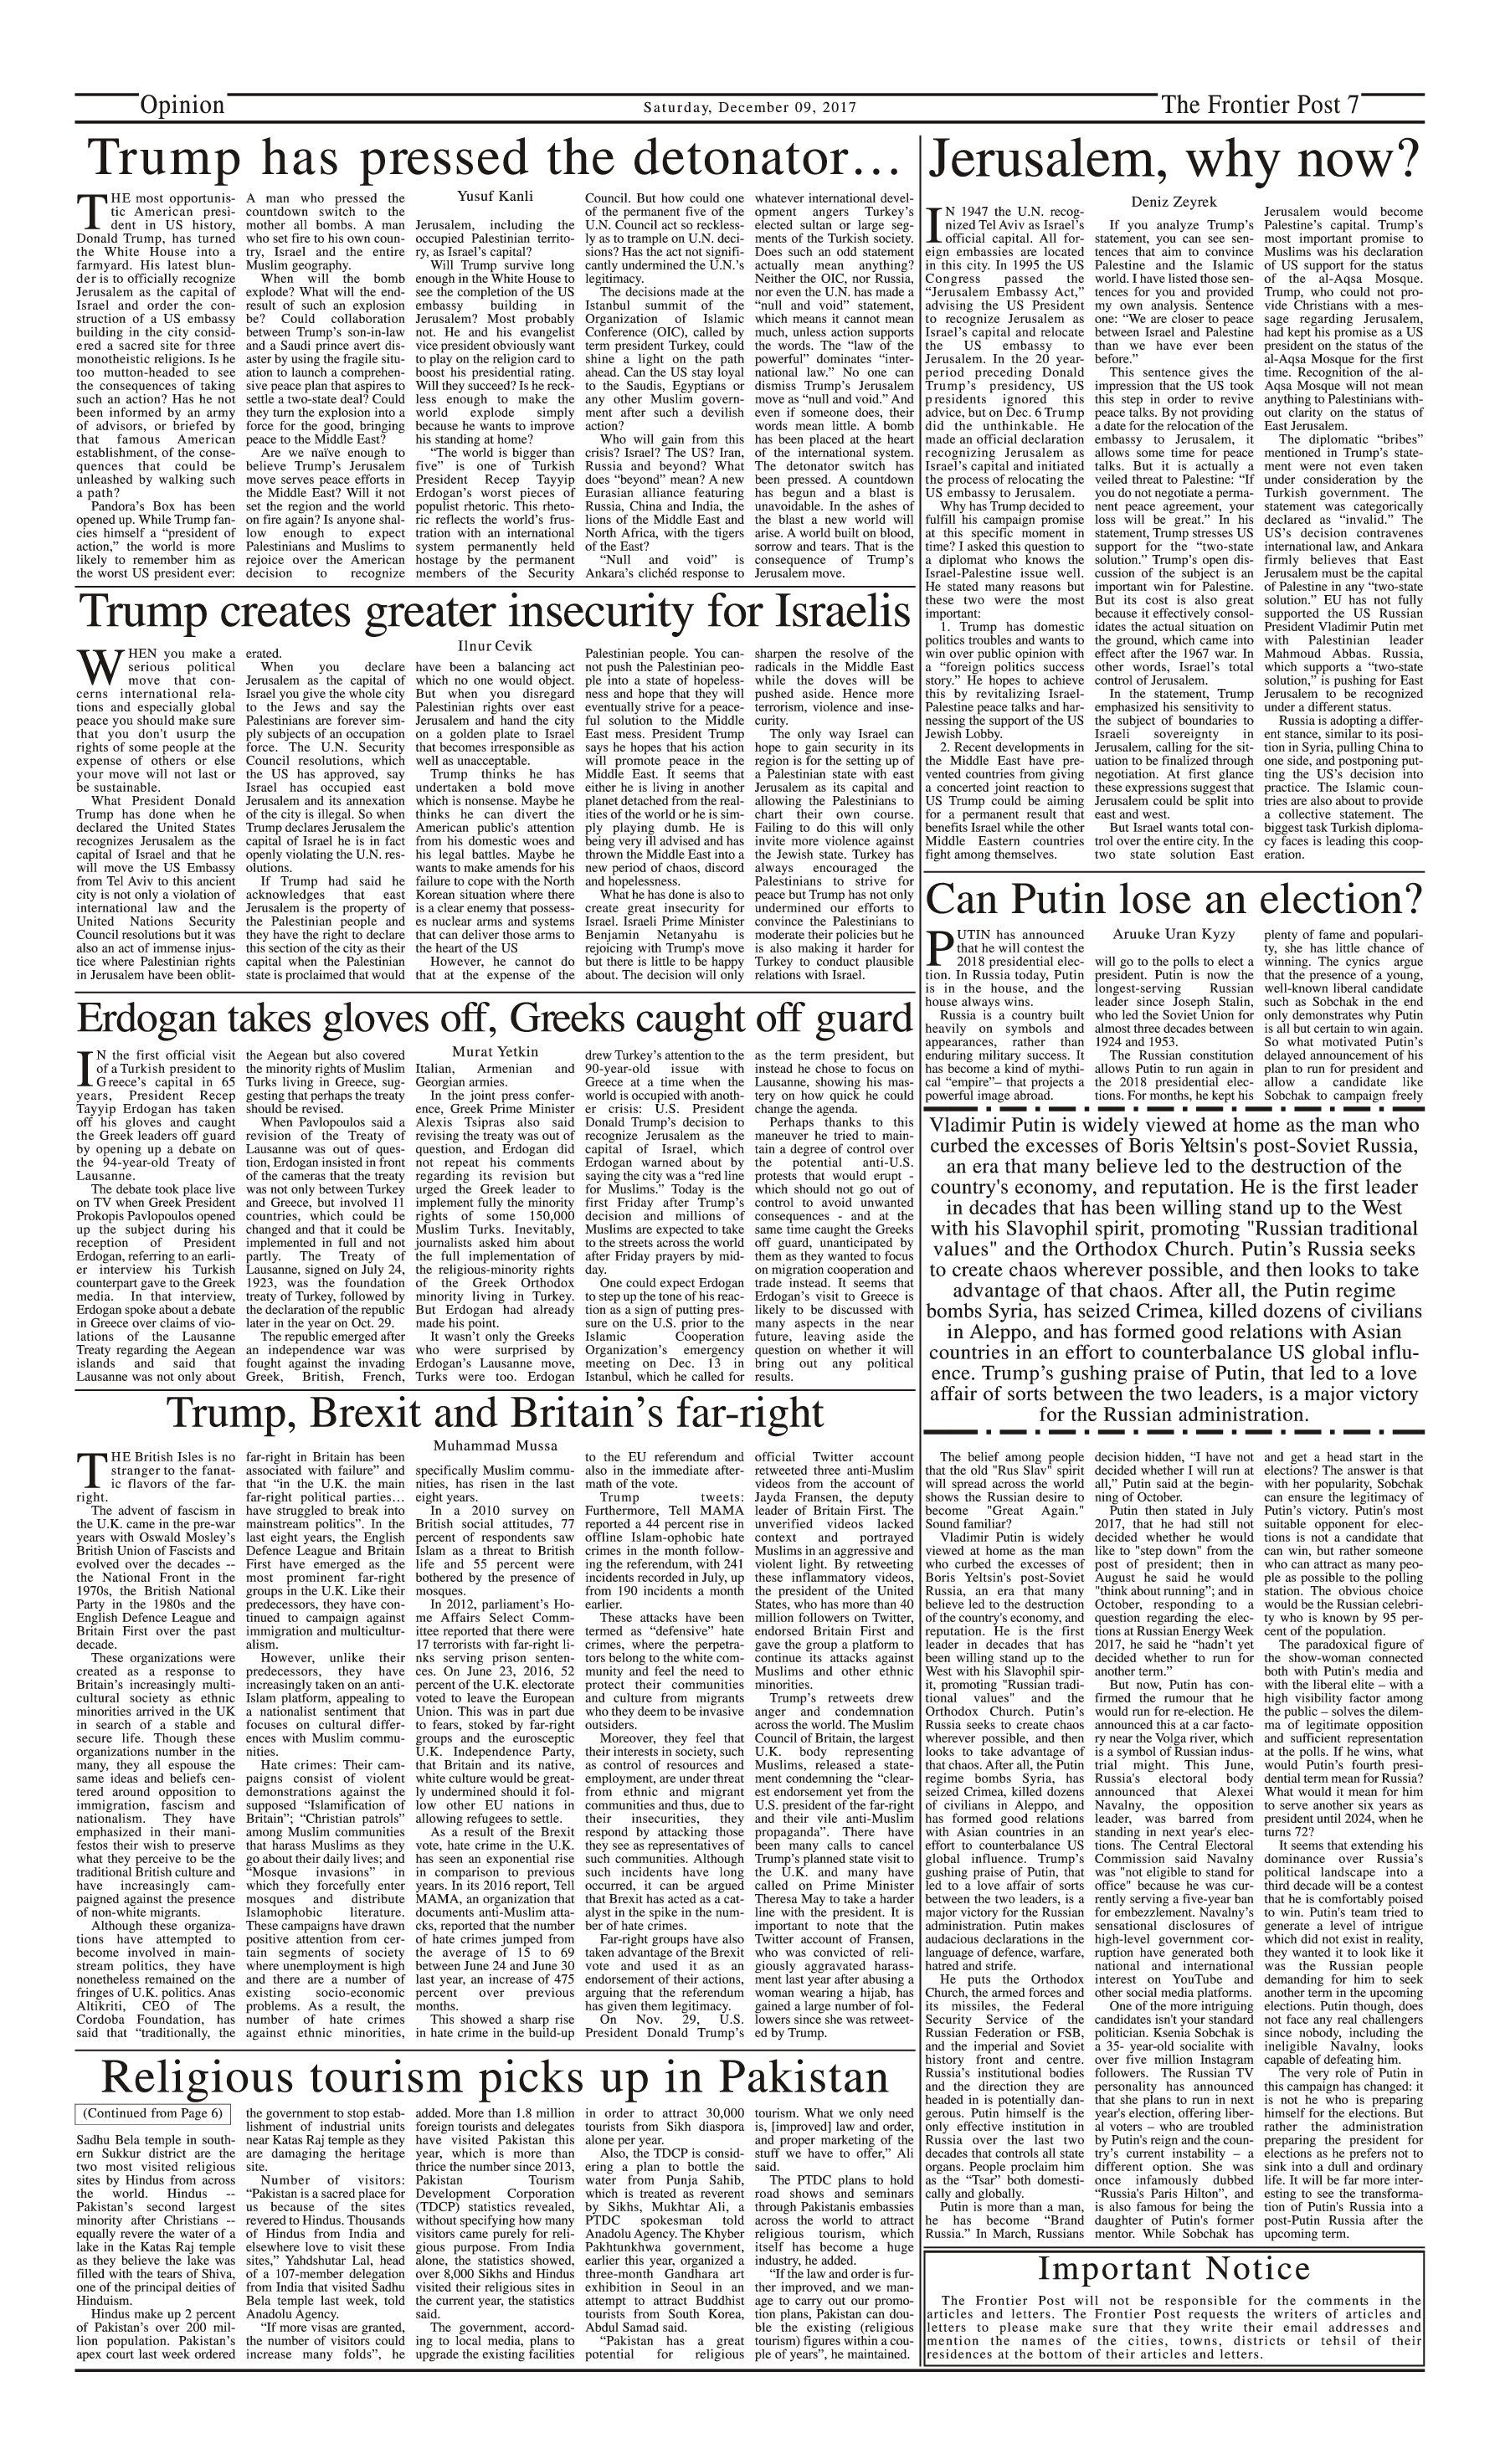 Opinion Page 9-12